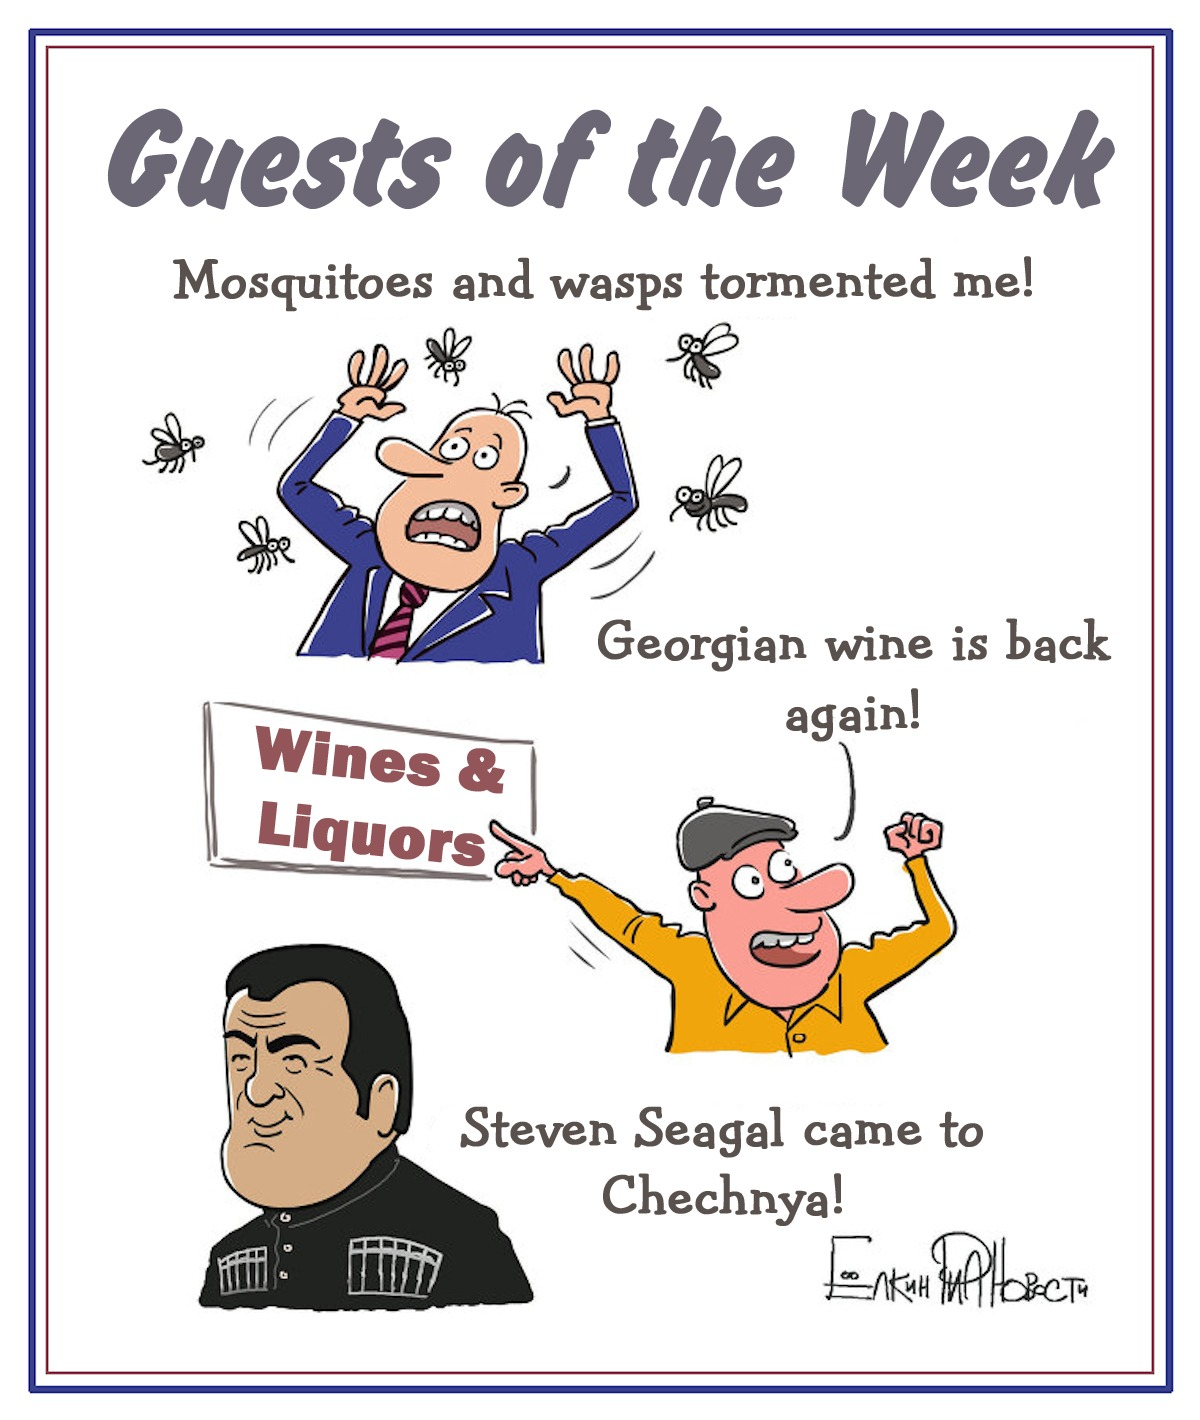 00 Sergei Yolkin. The News of the Week in Cartoons